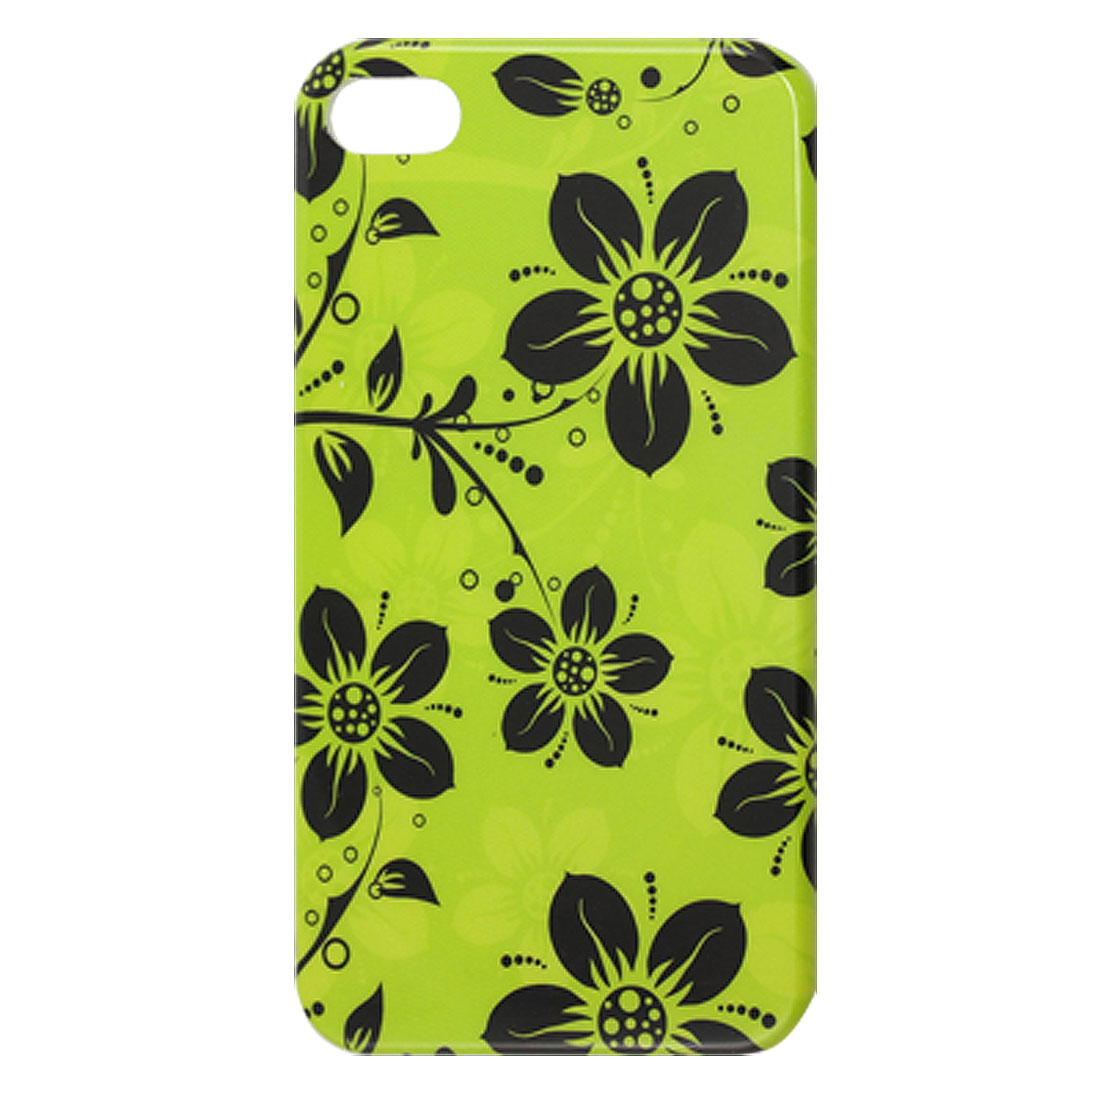 Hard Plastic Black Flower Green IMD Back Case Cover for iPhone 4 4G 4S